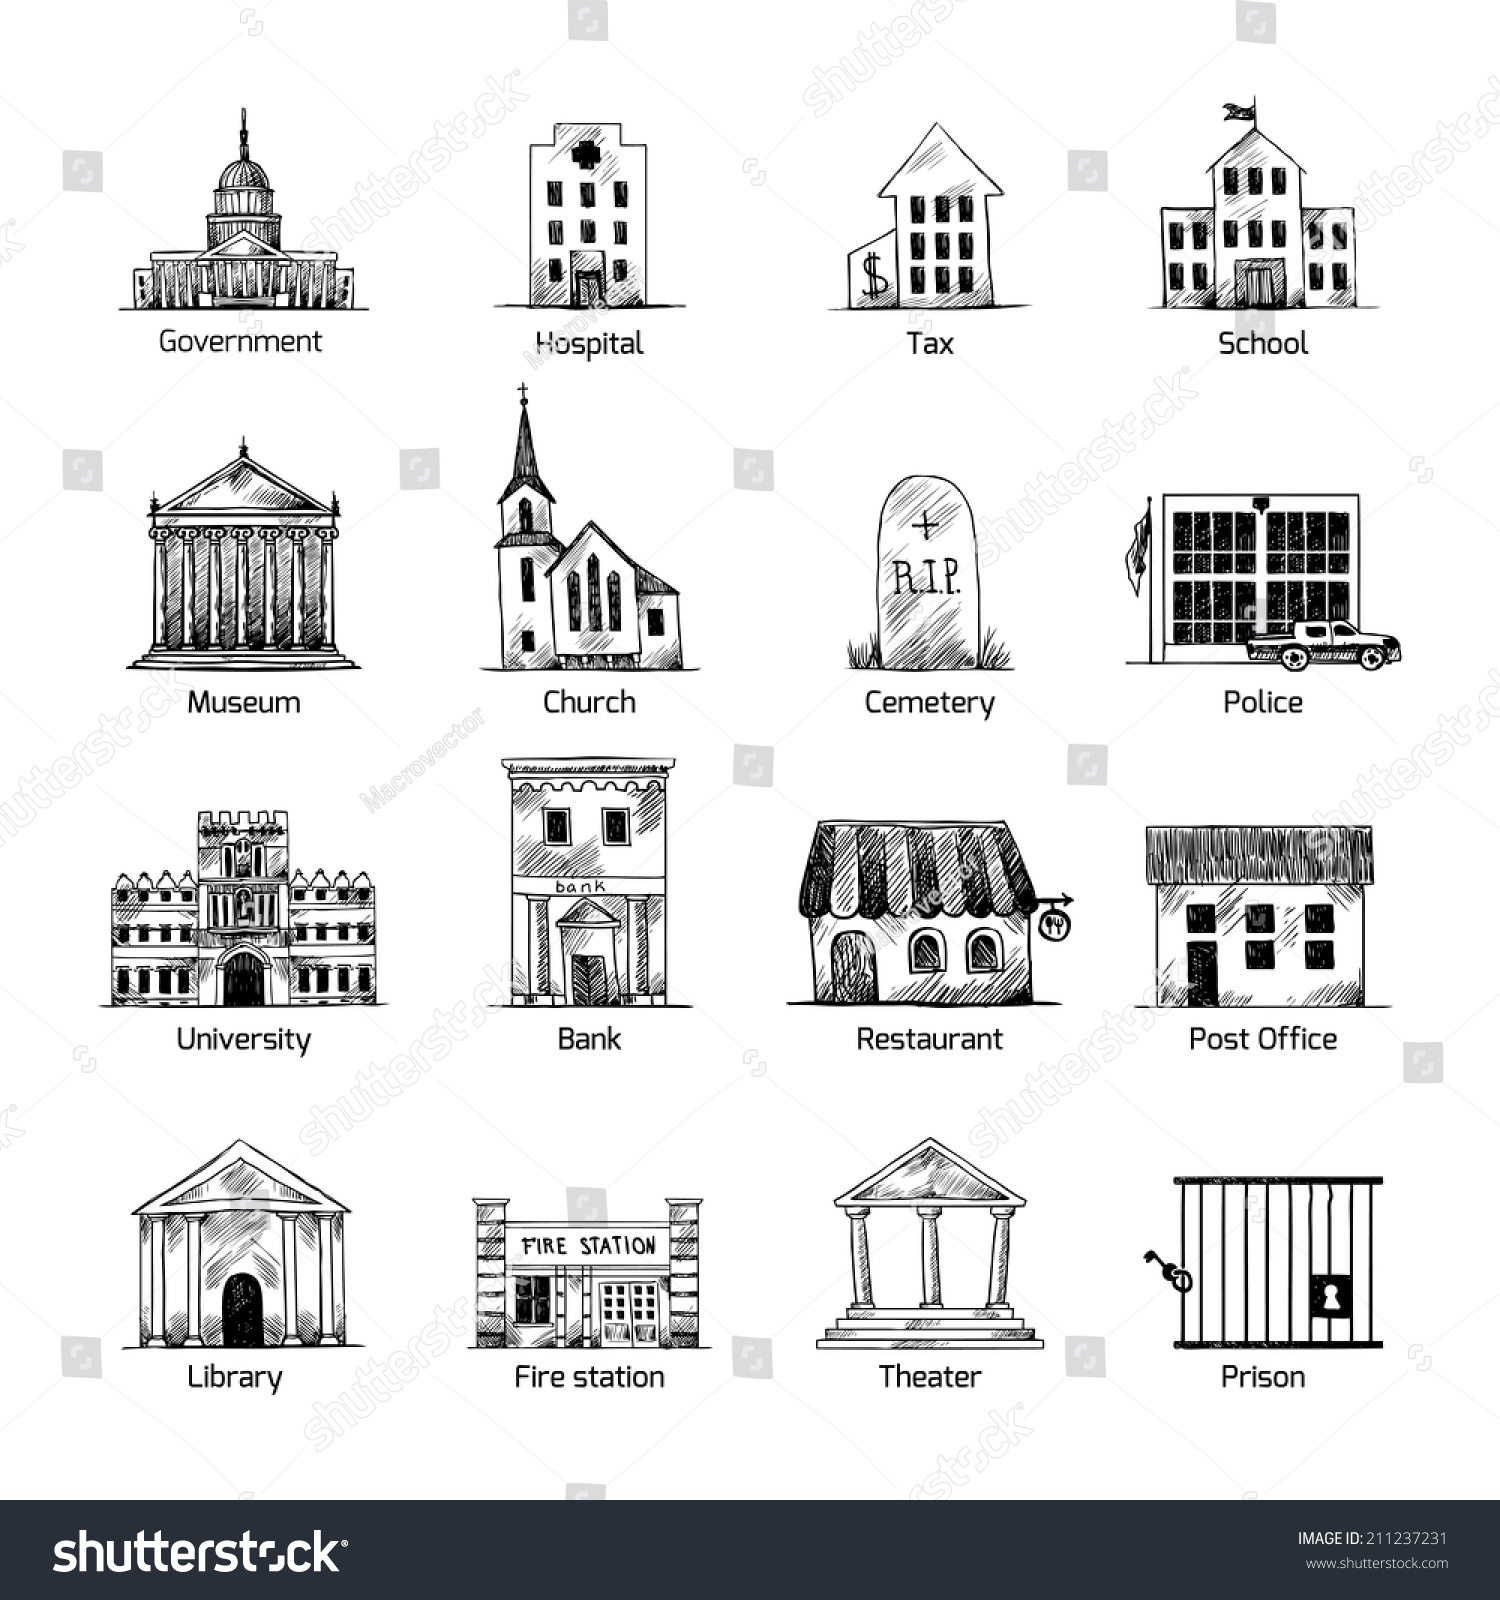 Government Building Icons Set Hand Draw Stock Vector ...